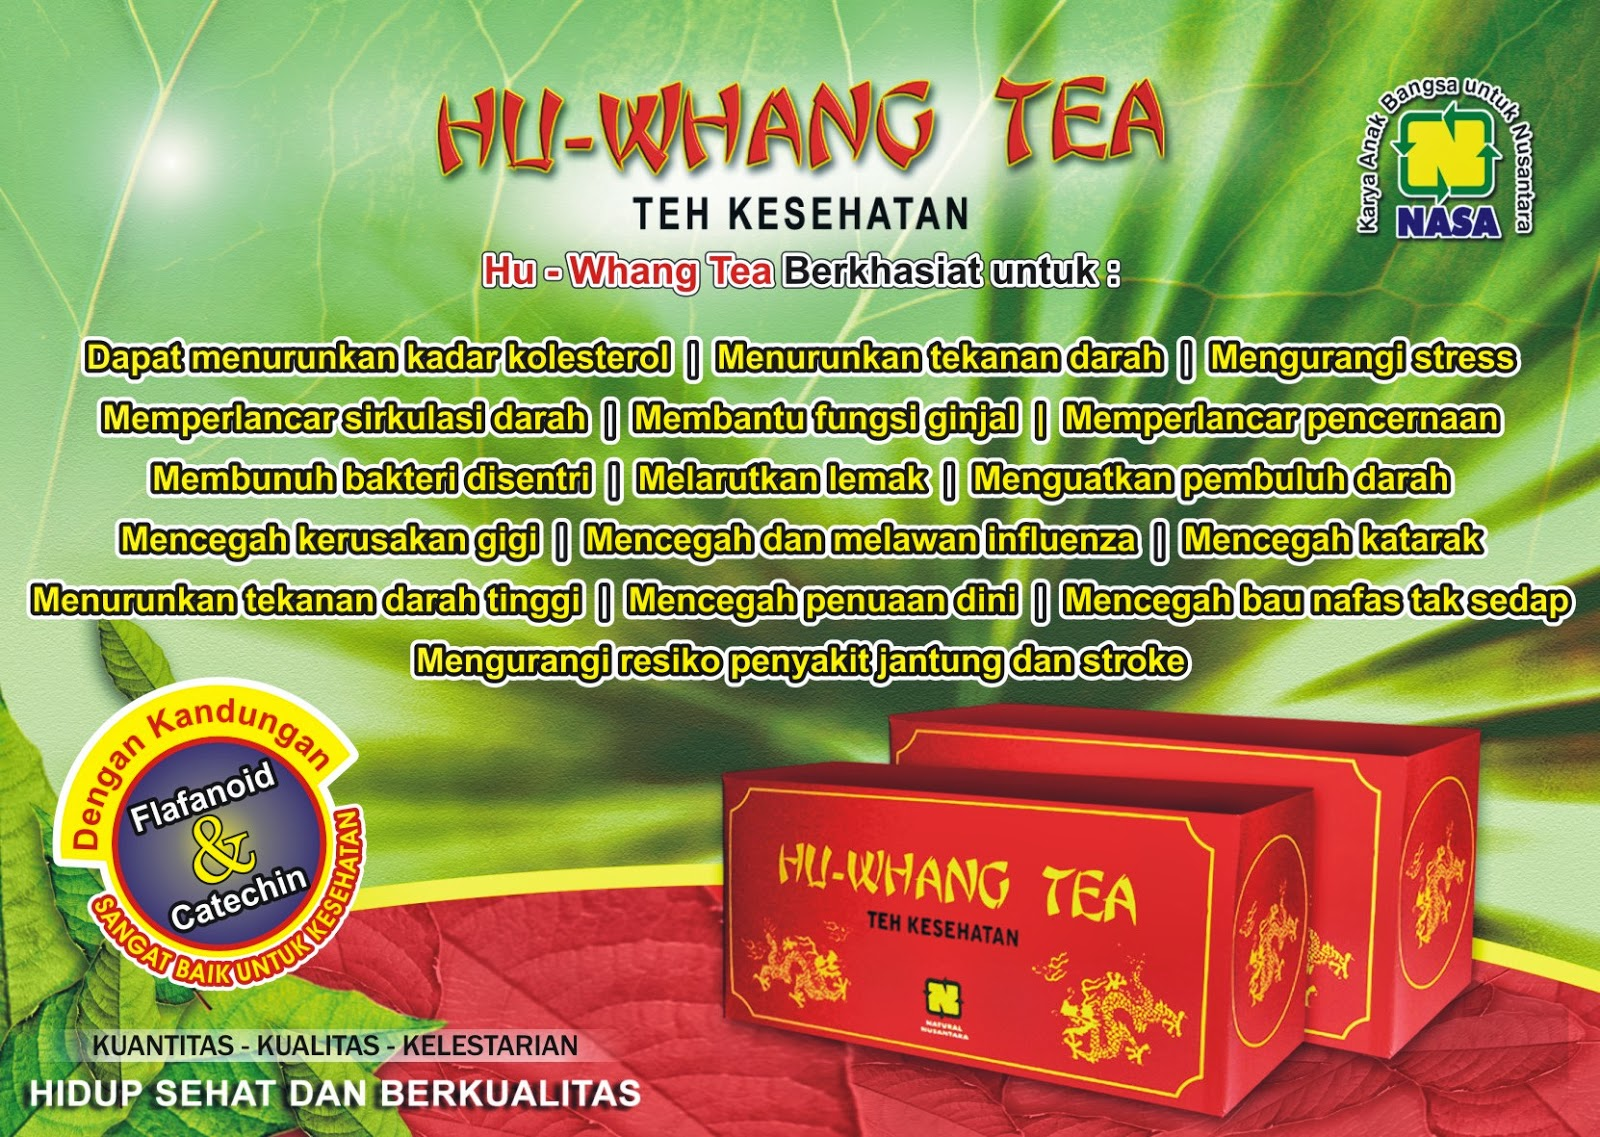 hu wang tea nasa, distributor hu wang tea, hu wang tea hwt, hu wang tea original, hu wang tea jogja, toko herbal kasimura, toko kasimura, kasimura herbal